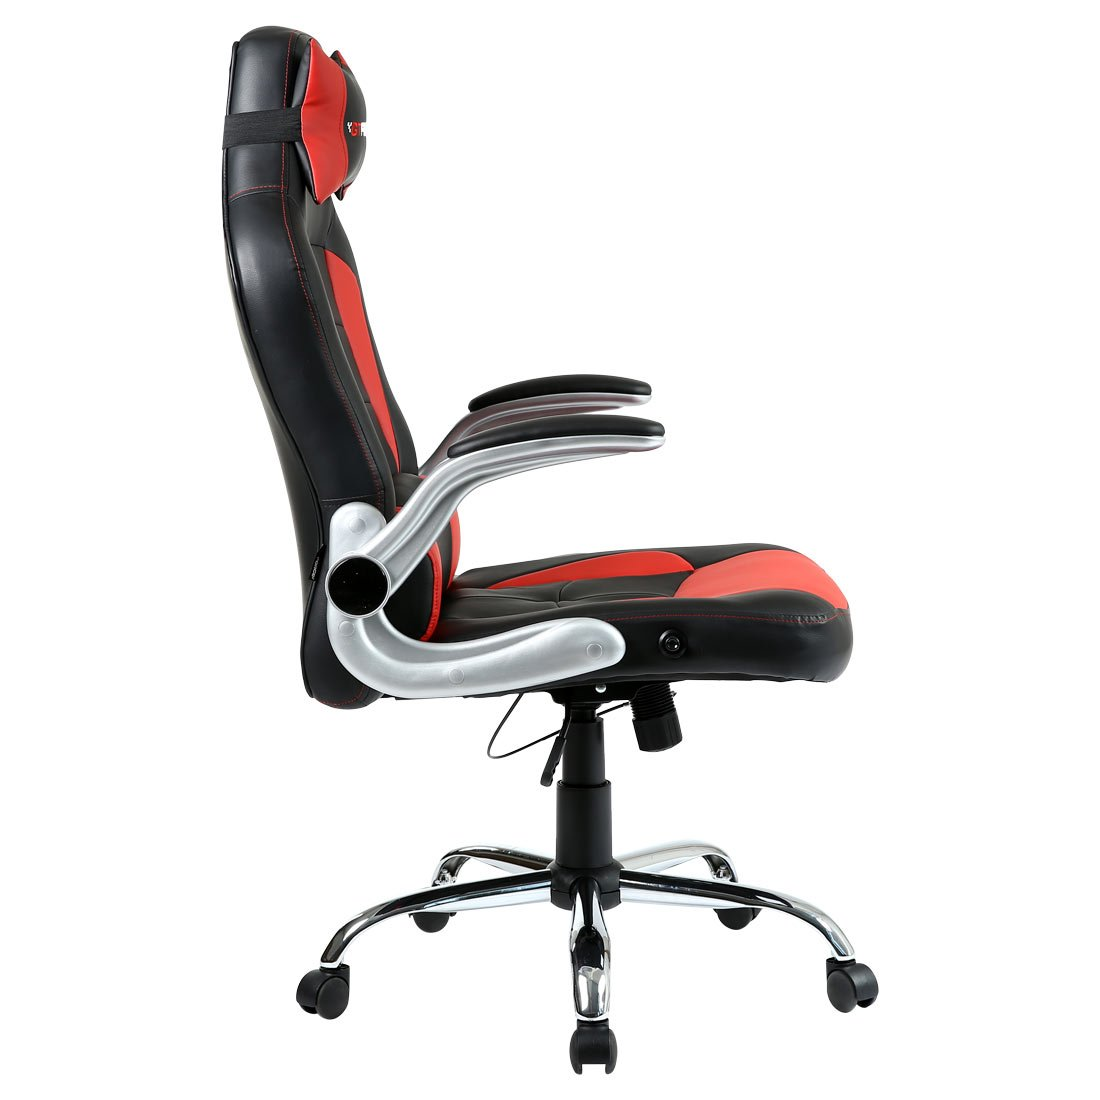 chairs and executive chair top red black furniture office innovation computer desk superlative leather